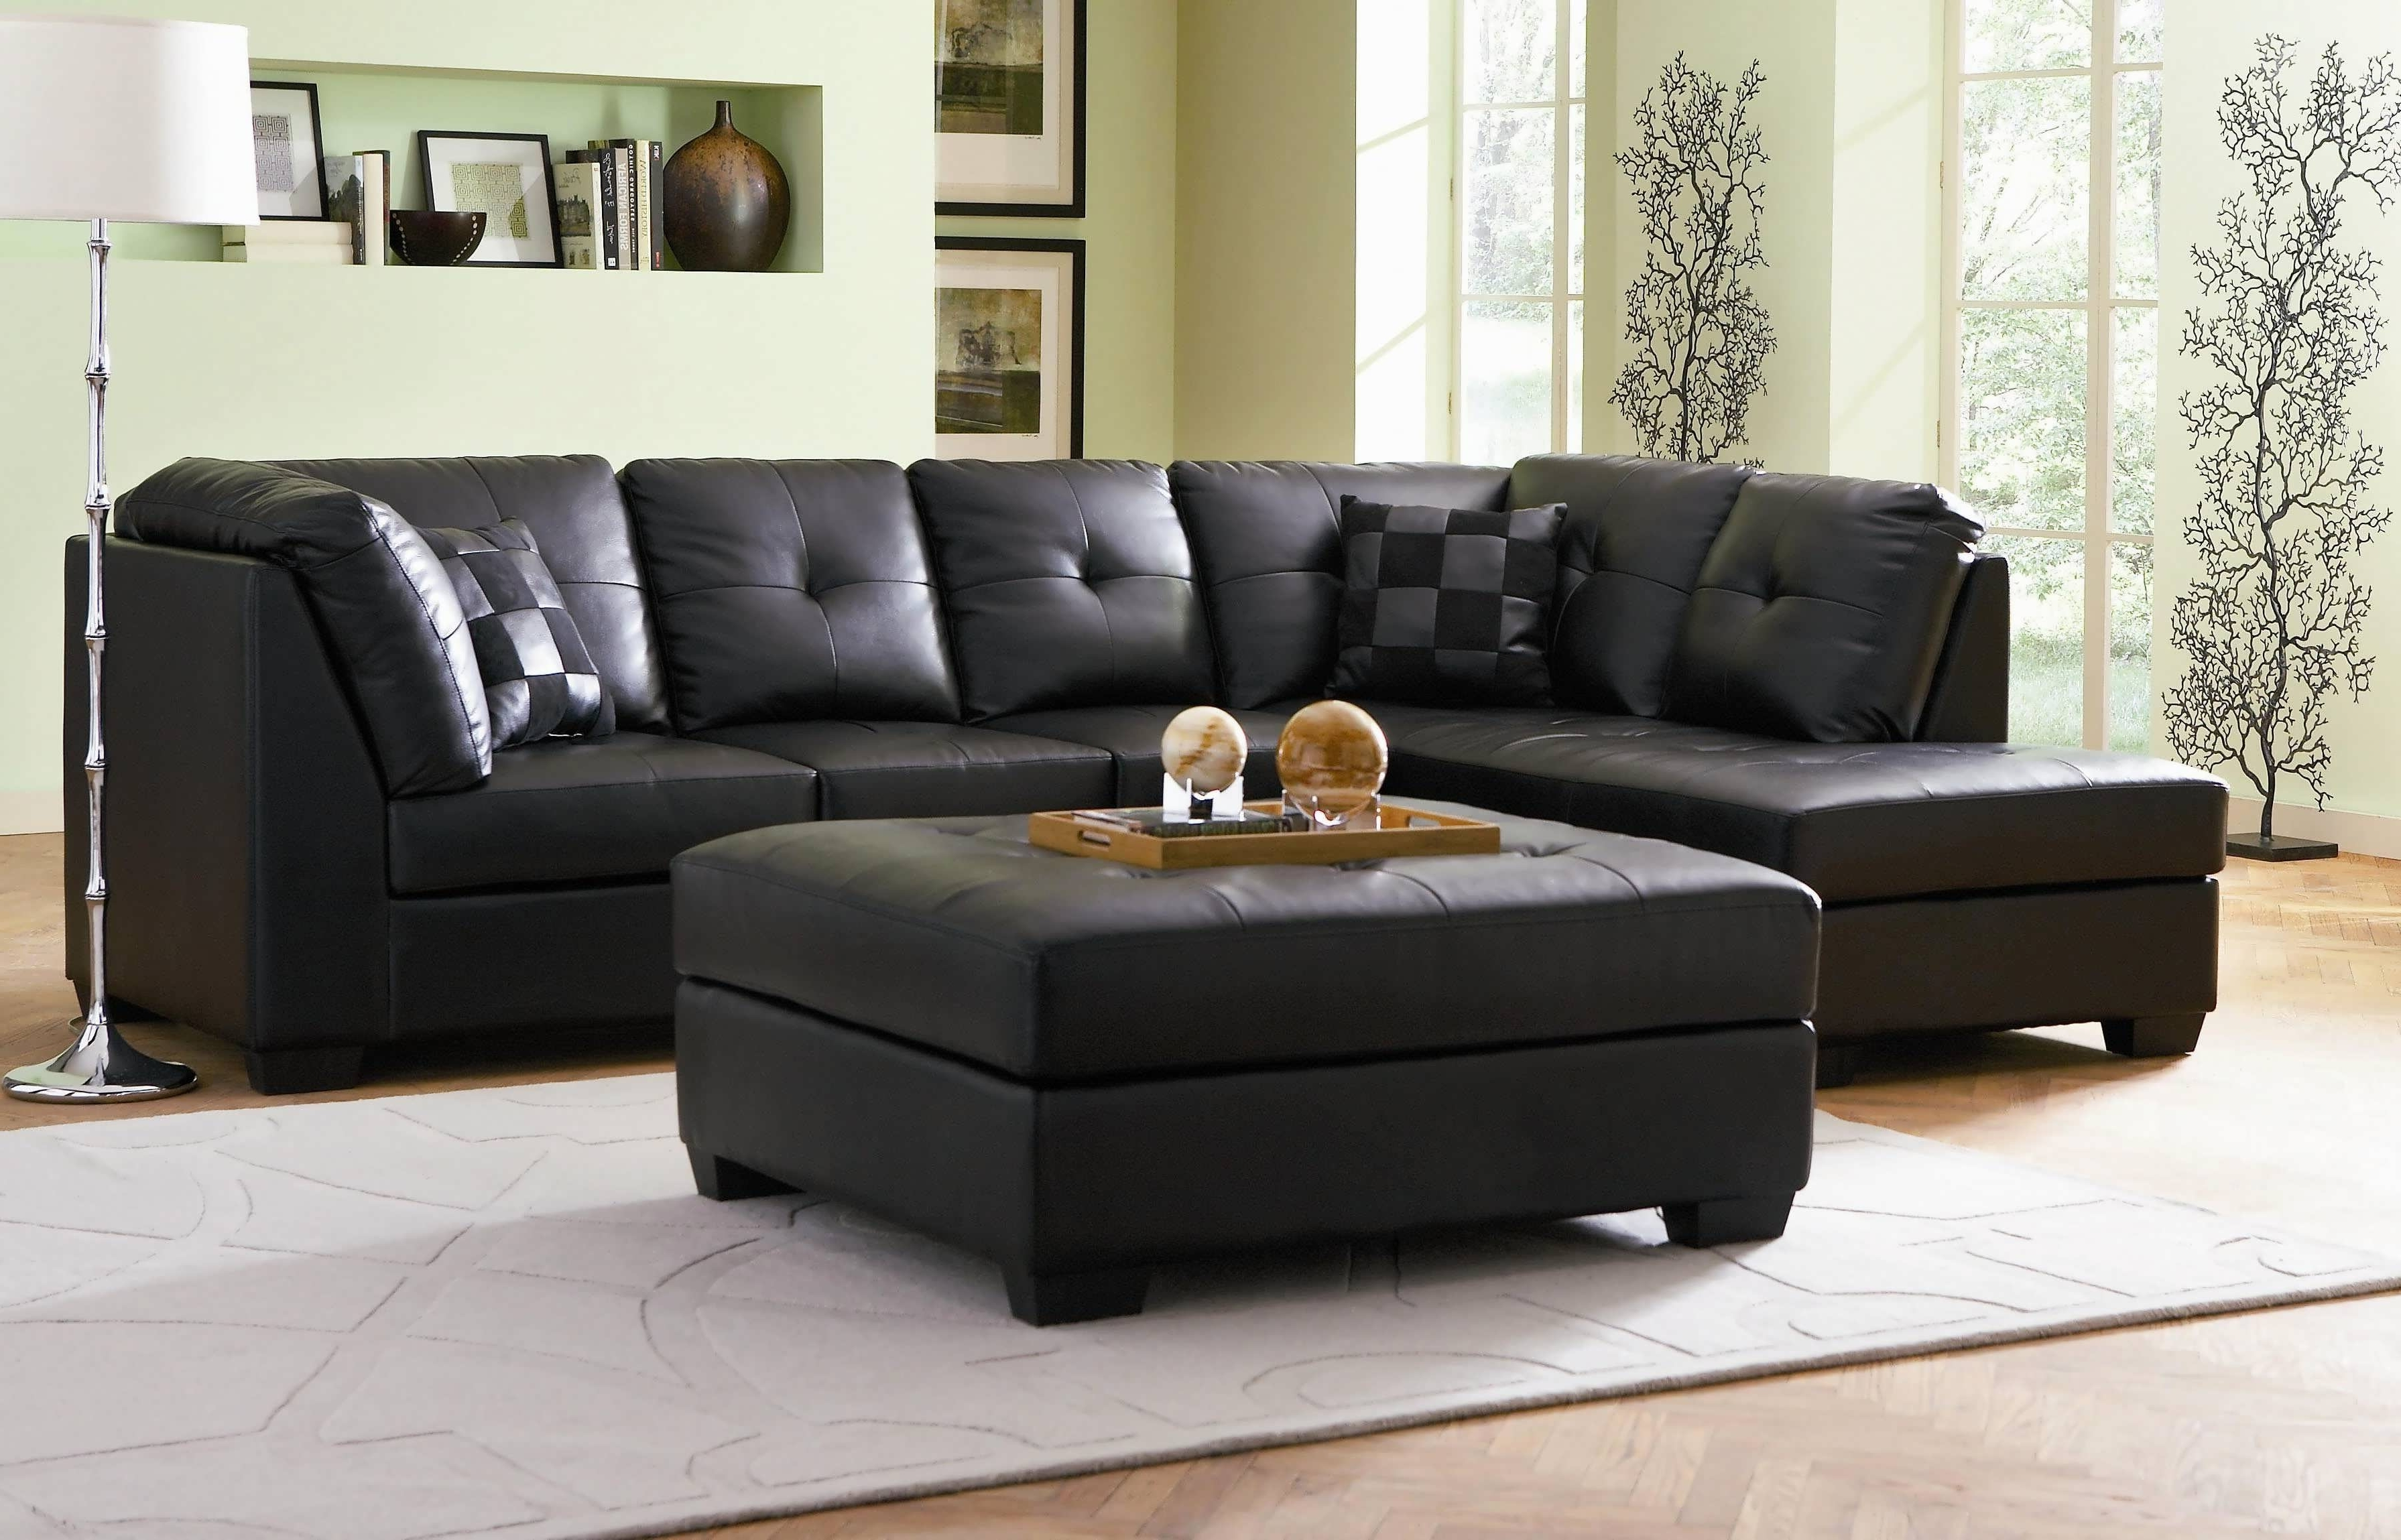 Small Chaise Sectionals Intended For 2018 Sofa : Big Sectional Couch Discount Sectionals Living Room (View 7 of 15)